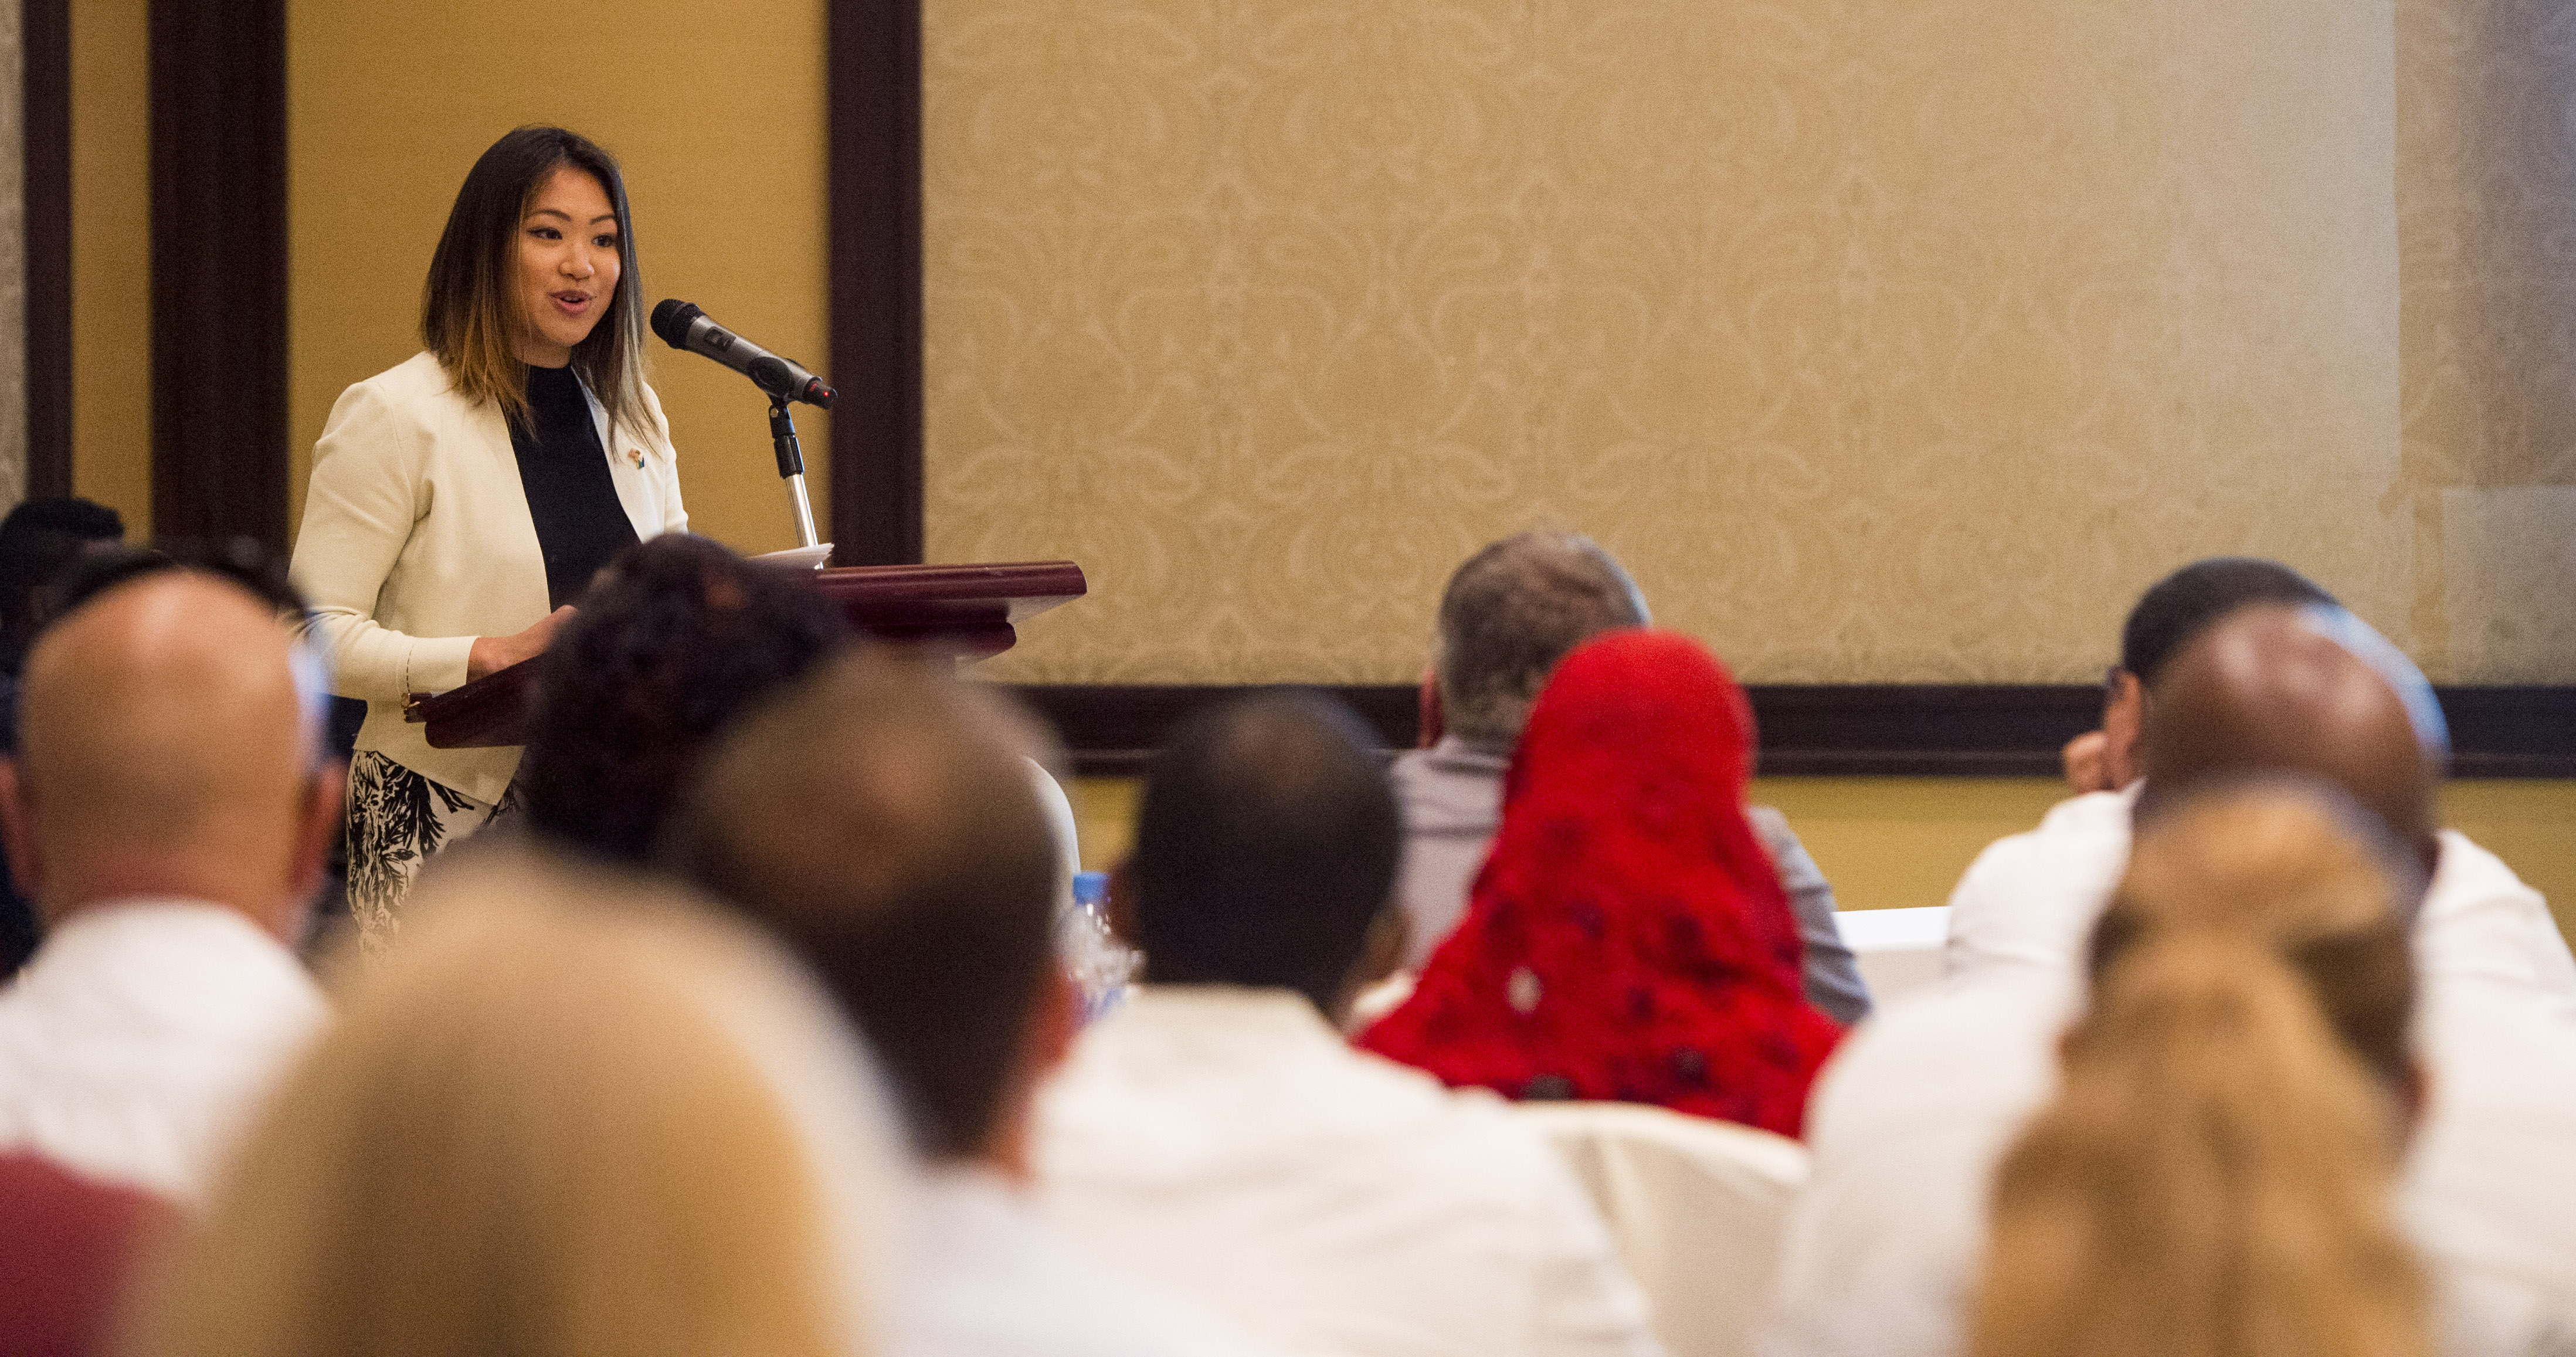 Merry Walker, U.S. Embassy Djibouti Economic and Commercial Officer, gives her opening remarks during an Economic Outreach Symposium held at the Kempinski Hotel, Djibouti, Dec. 19, 2017. Hosted by the Combined Joint Task Force - Horn of Africa Contingency Contracting Office and commonly referred to as Vendor Day, the symposium is designed to bring local business owners together and inform them of the opportunities and processes of doing business as a vendor with the U.S. government. (U.S. Air Force photo by Staff Sgt. Timothy Moore)